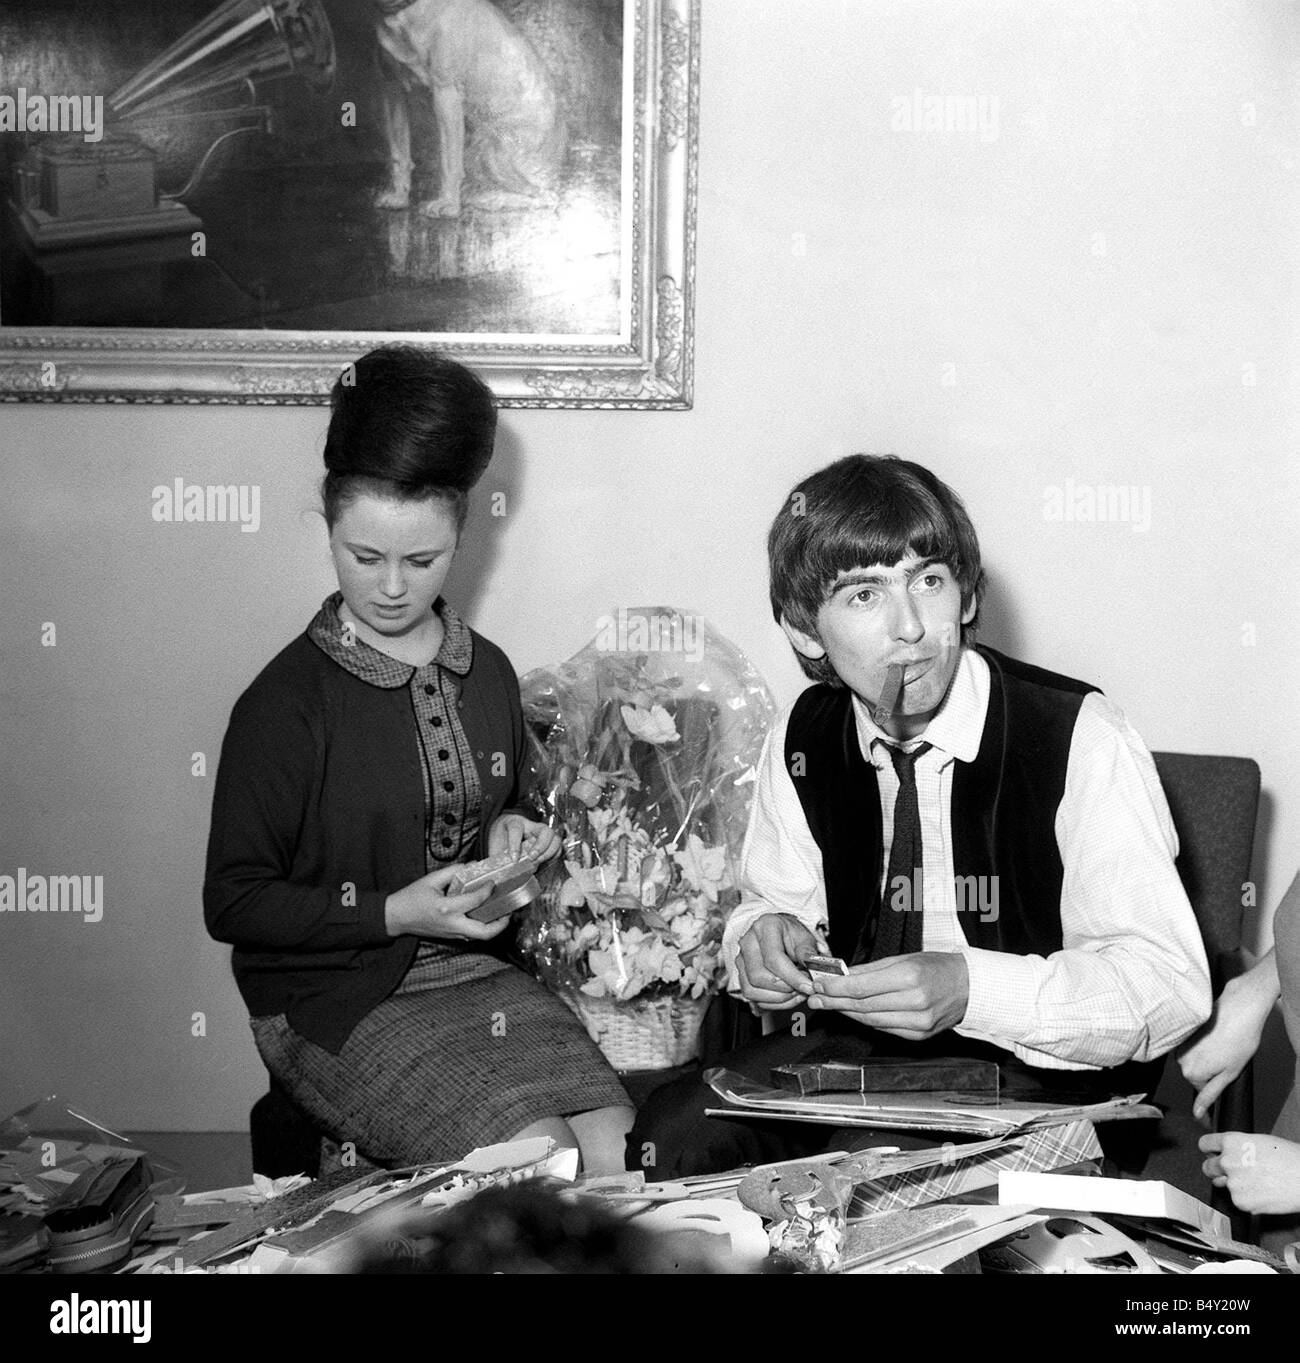 Pop Group The Beatles February 1964 George Harrison Anne Collingham Beatle 21st Birthday With Fan Club Secretary Helping Him